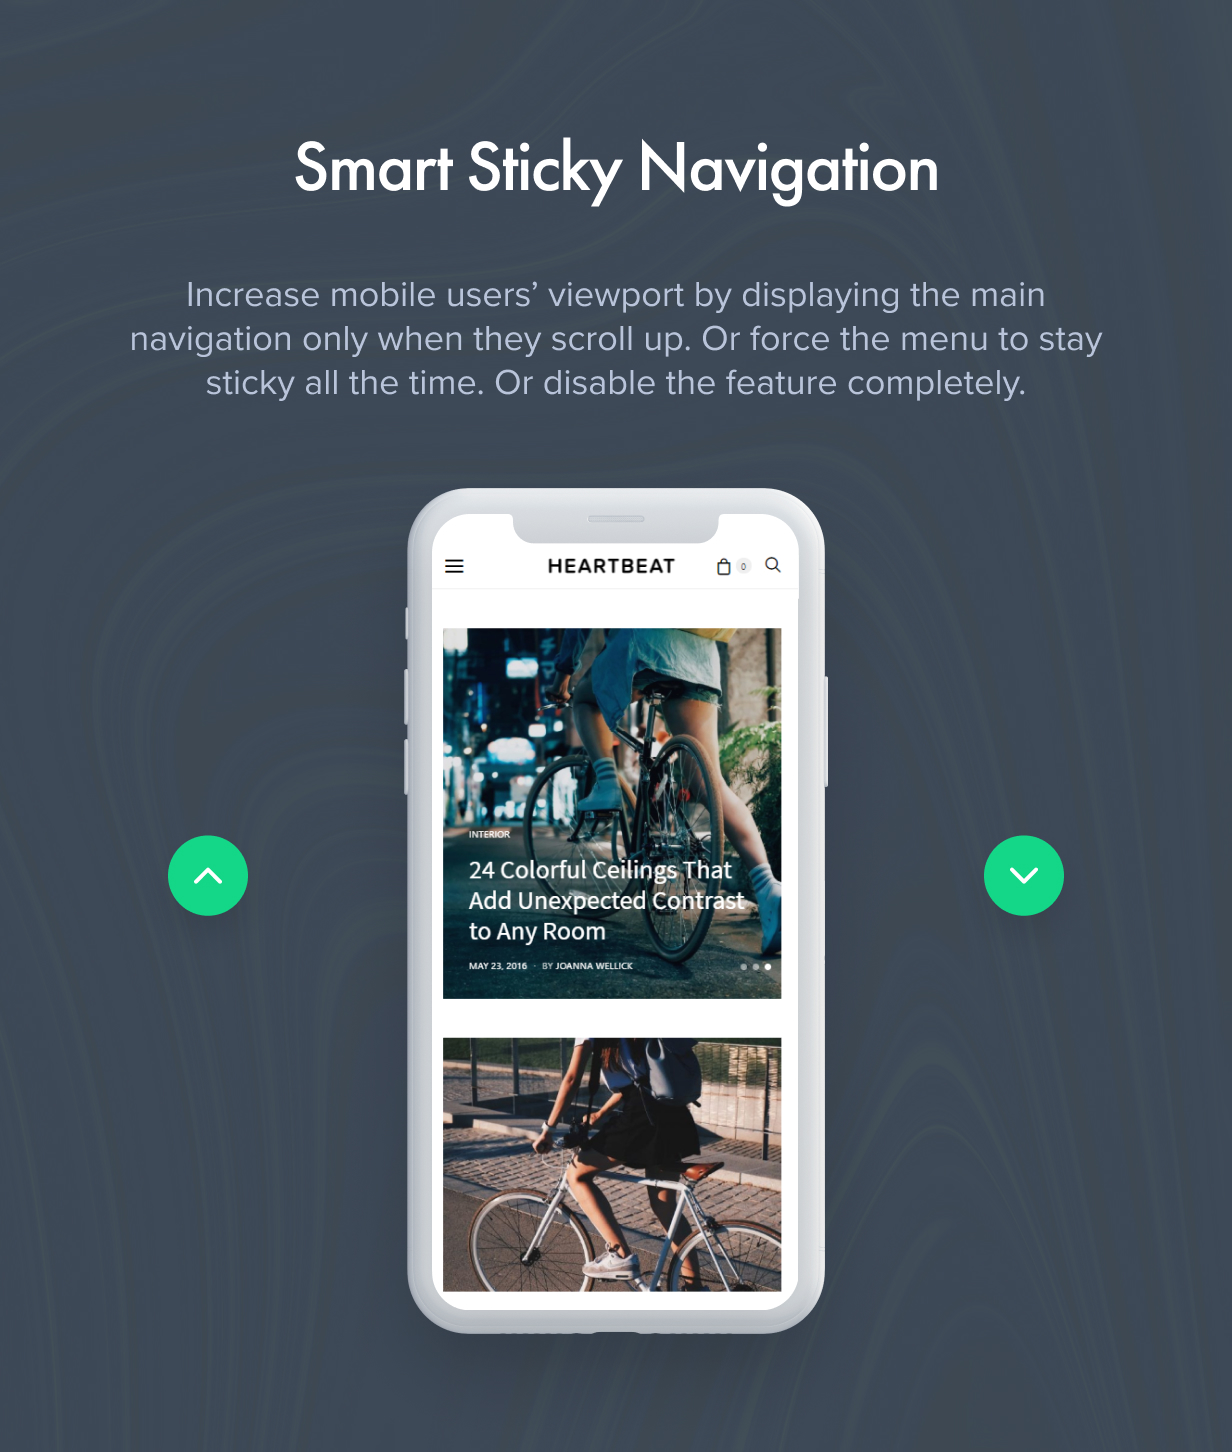 Smart Sticky Navigation